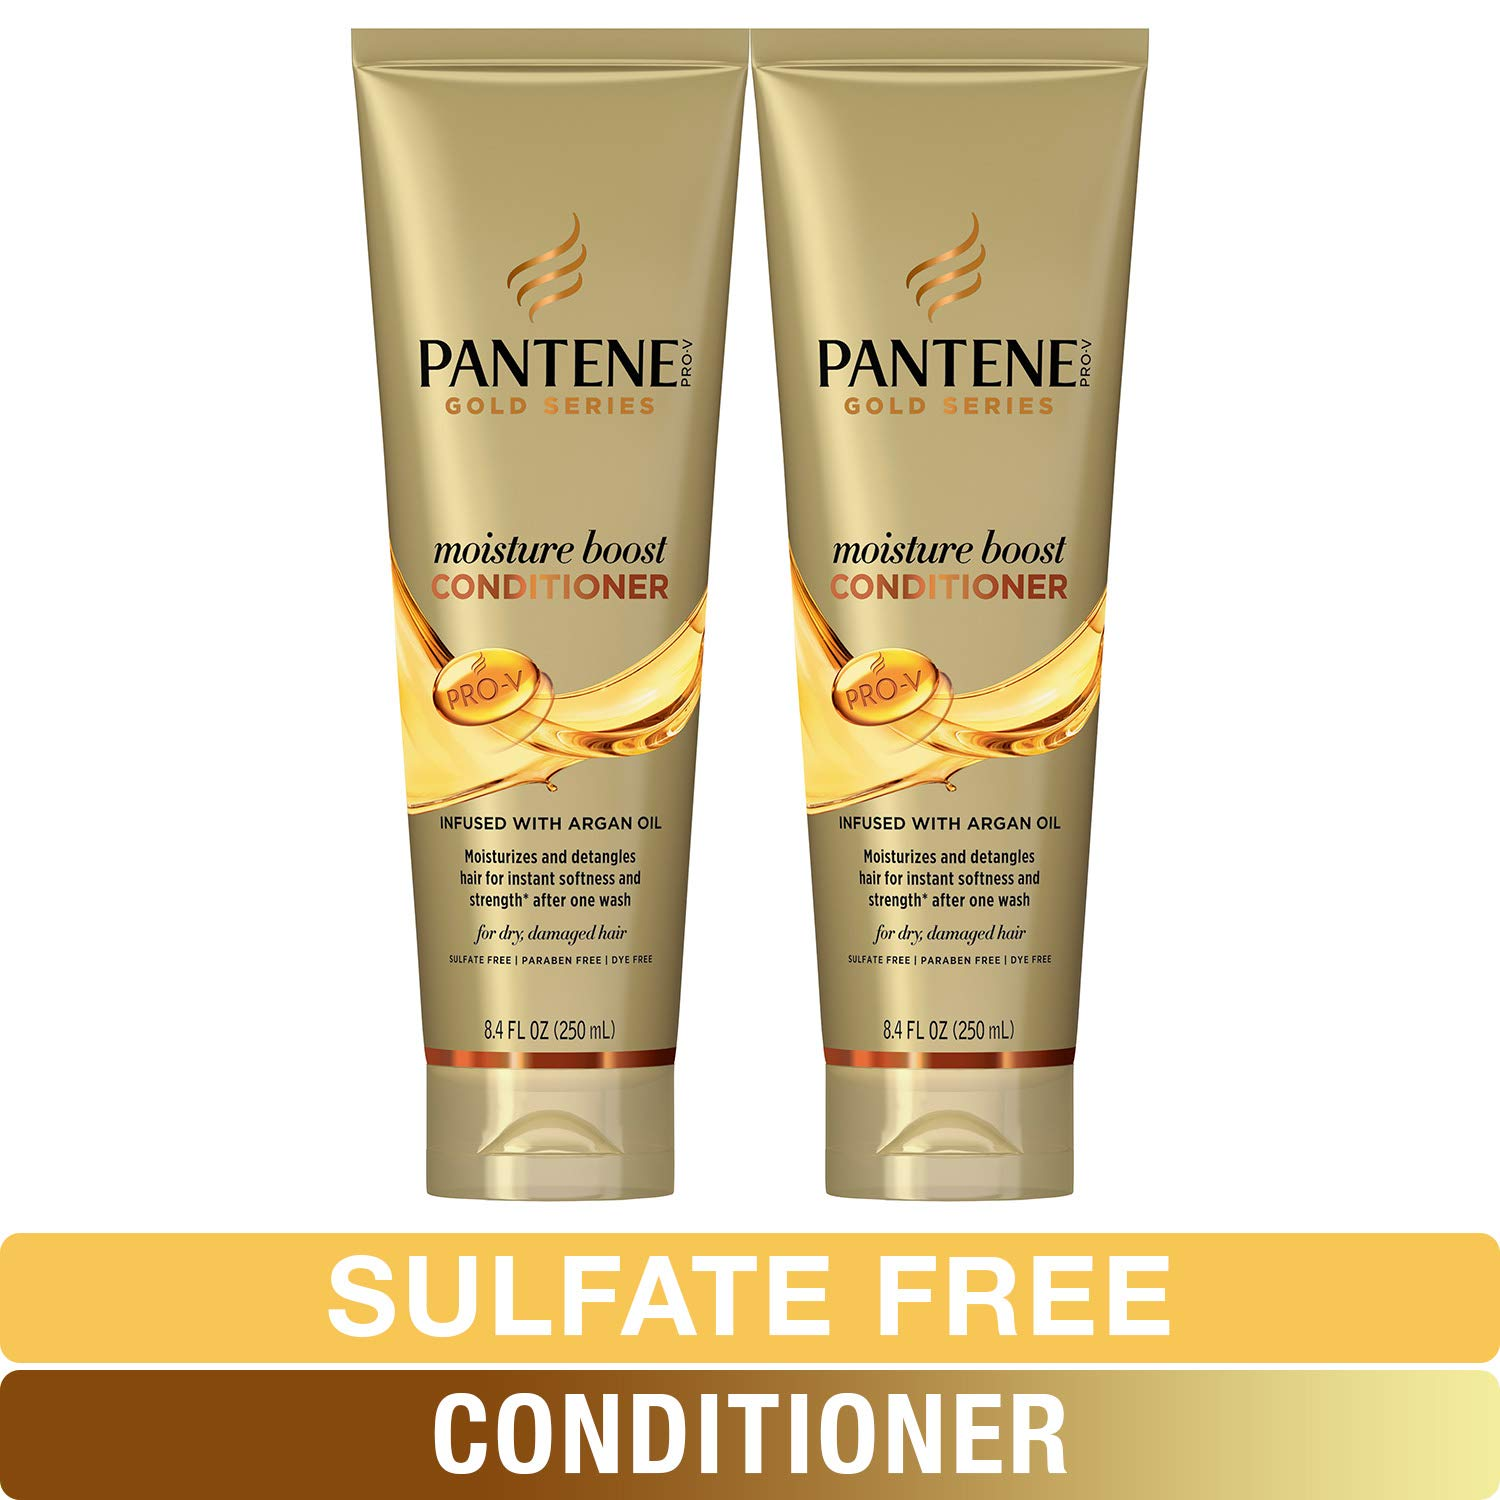 Pantene, Sulfate and Paraben Free Conditioner with Argan Oil, Pro-V Gold Series, for Natural and Curly Textured Hair, 8.4 fl oz, Twin Pack